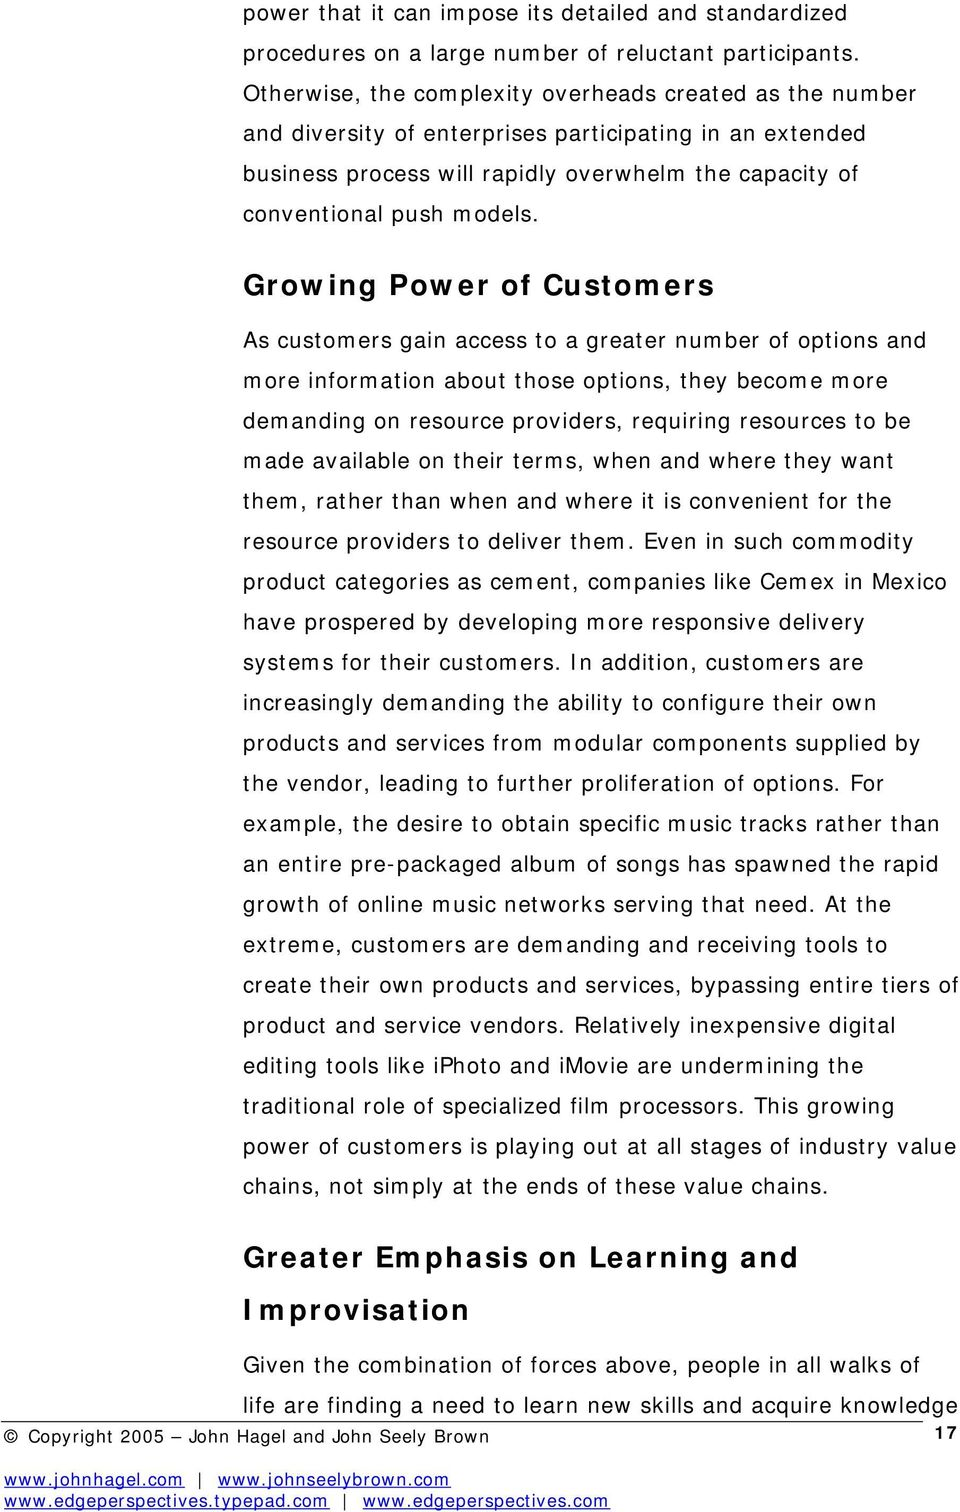 Growing Power of Customers As customers gain access to a greater number of options and more information about those options, they become more demanding on resource providers, requiring resources to